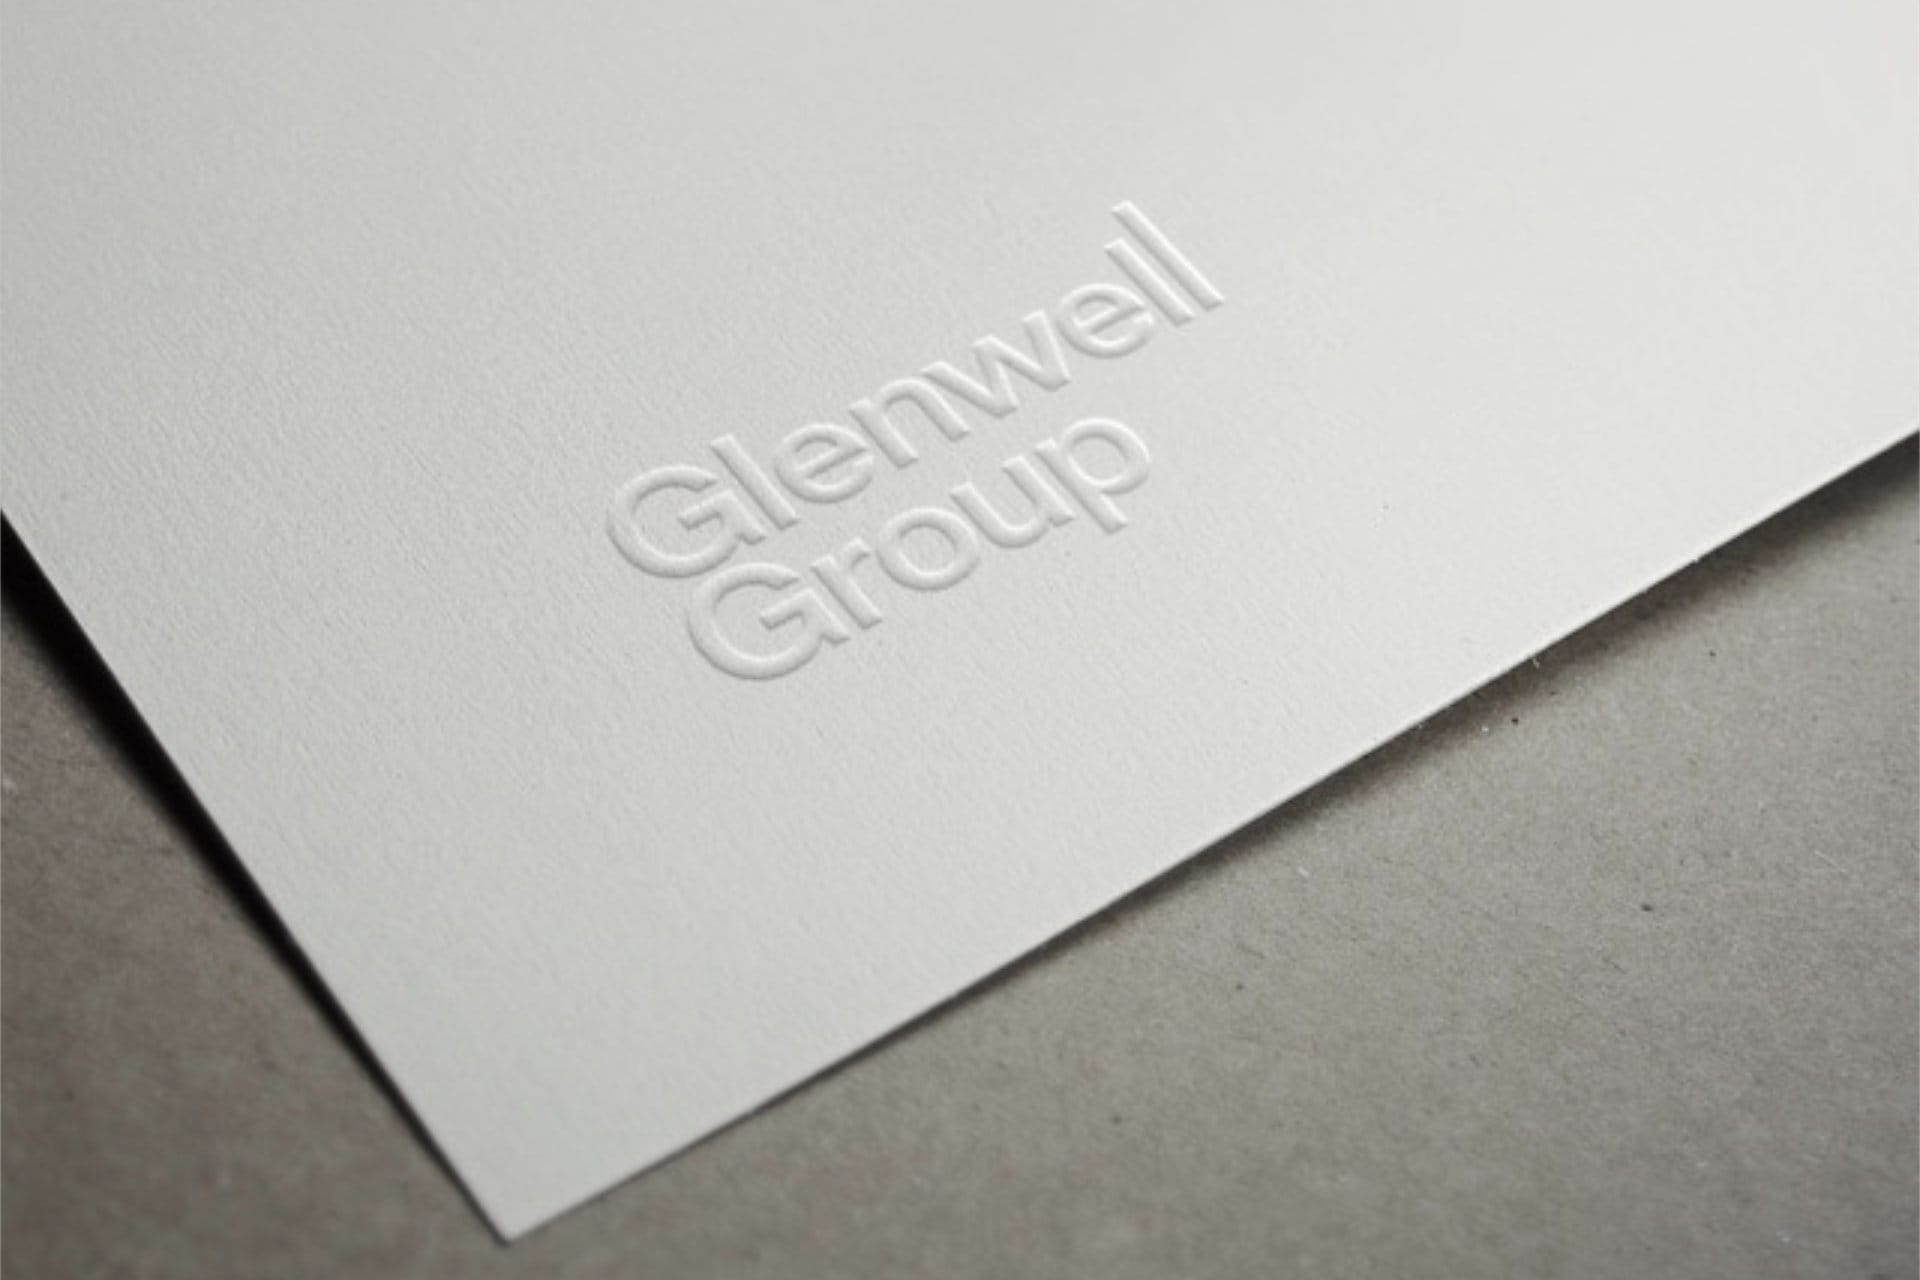 Glenwell Group launches its rebranding with new corporate identity and website